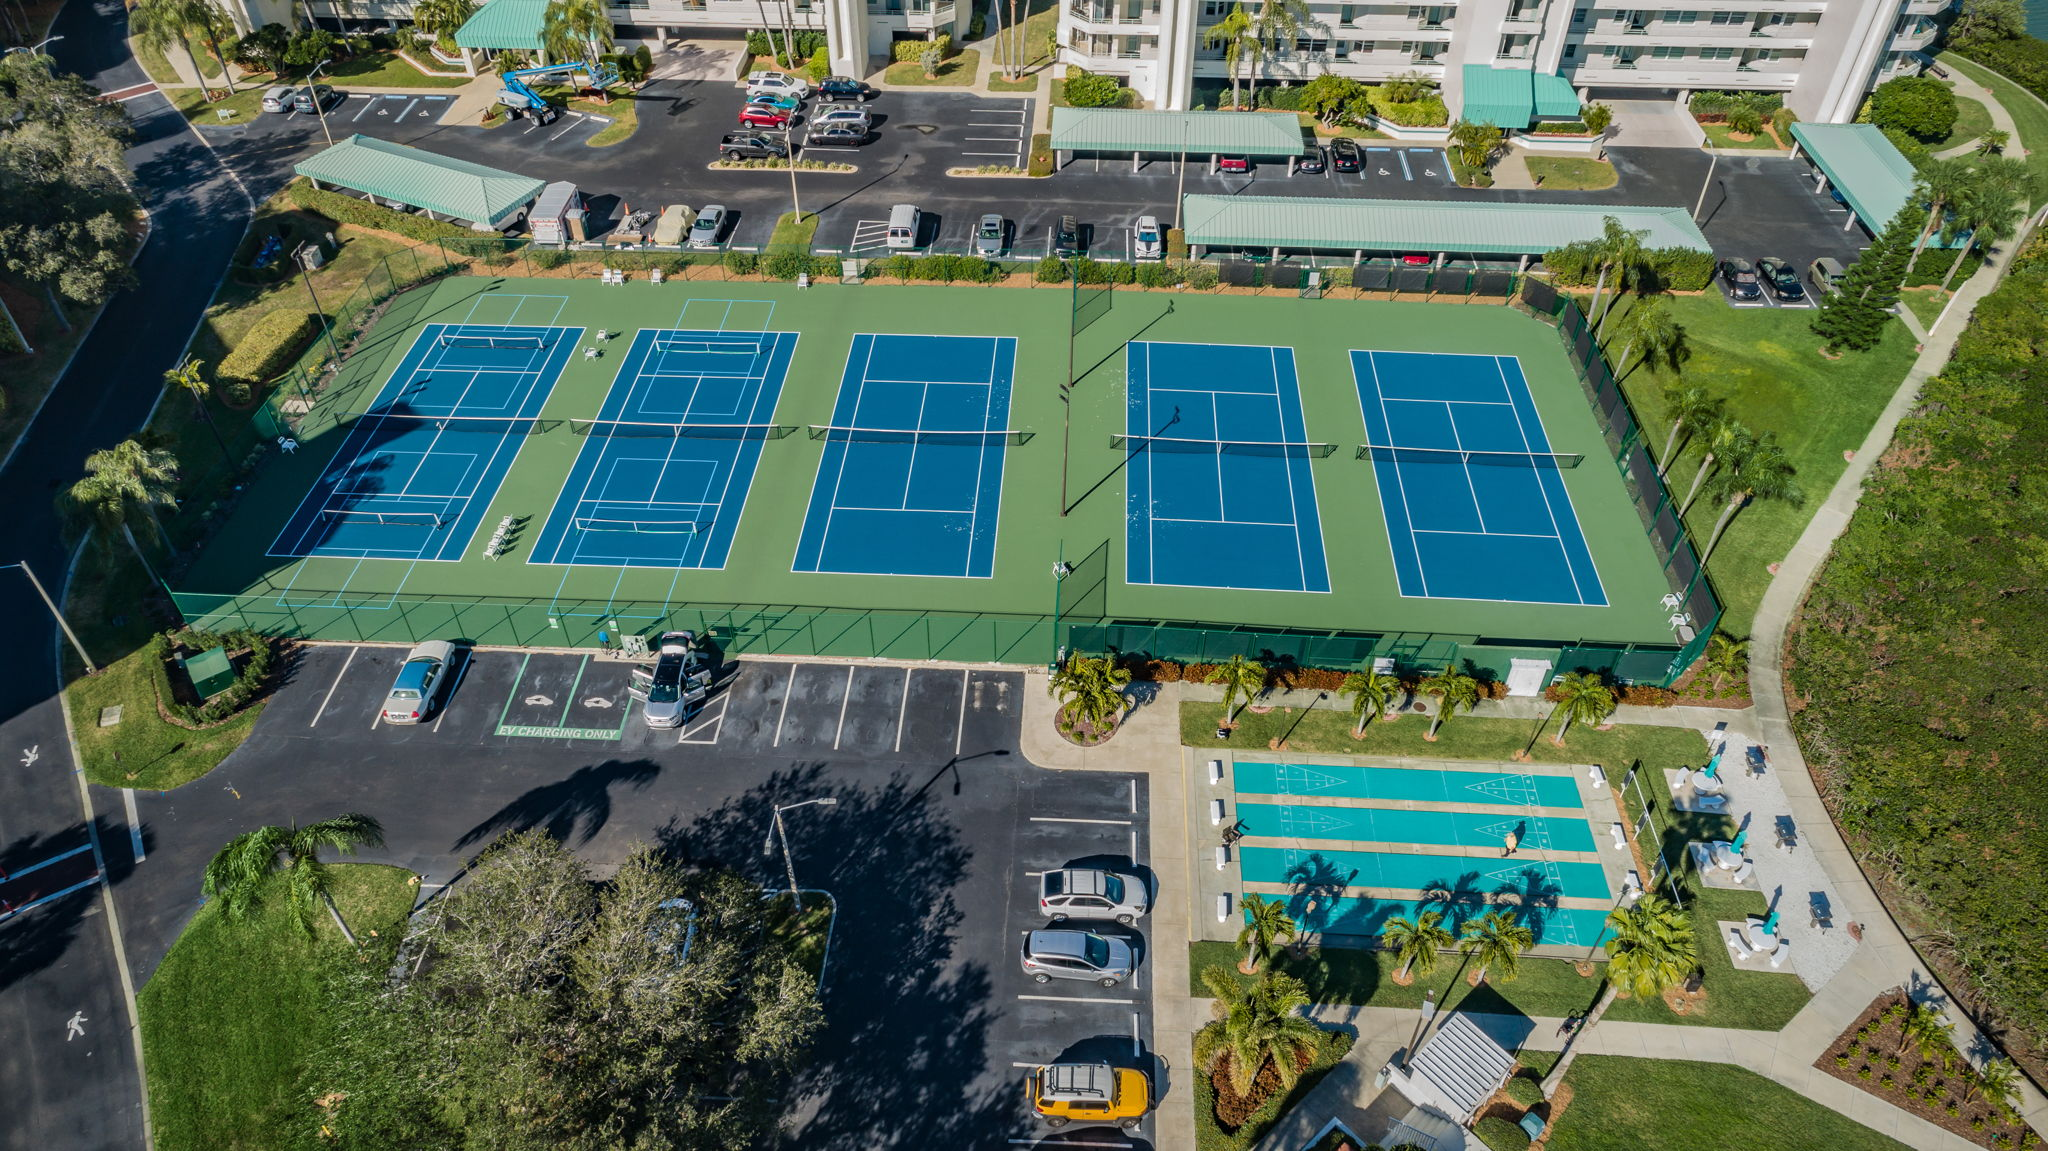 Pickelball, Tennis, Shuffleboard and Grilling Areas